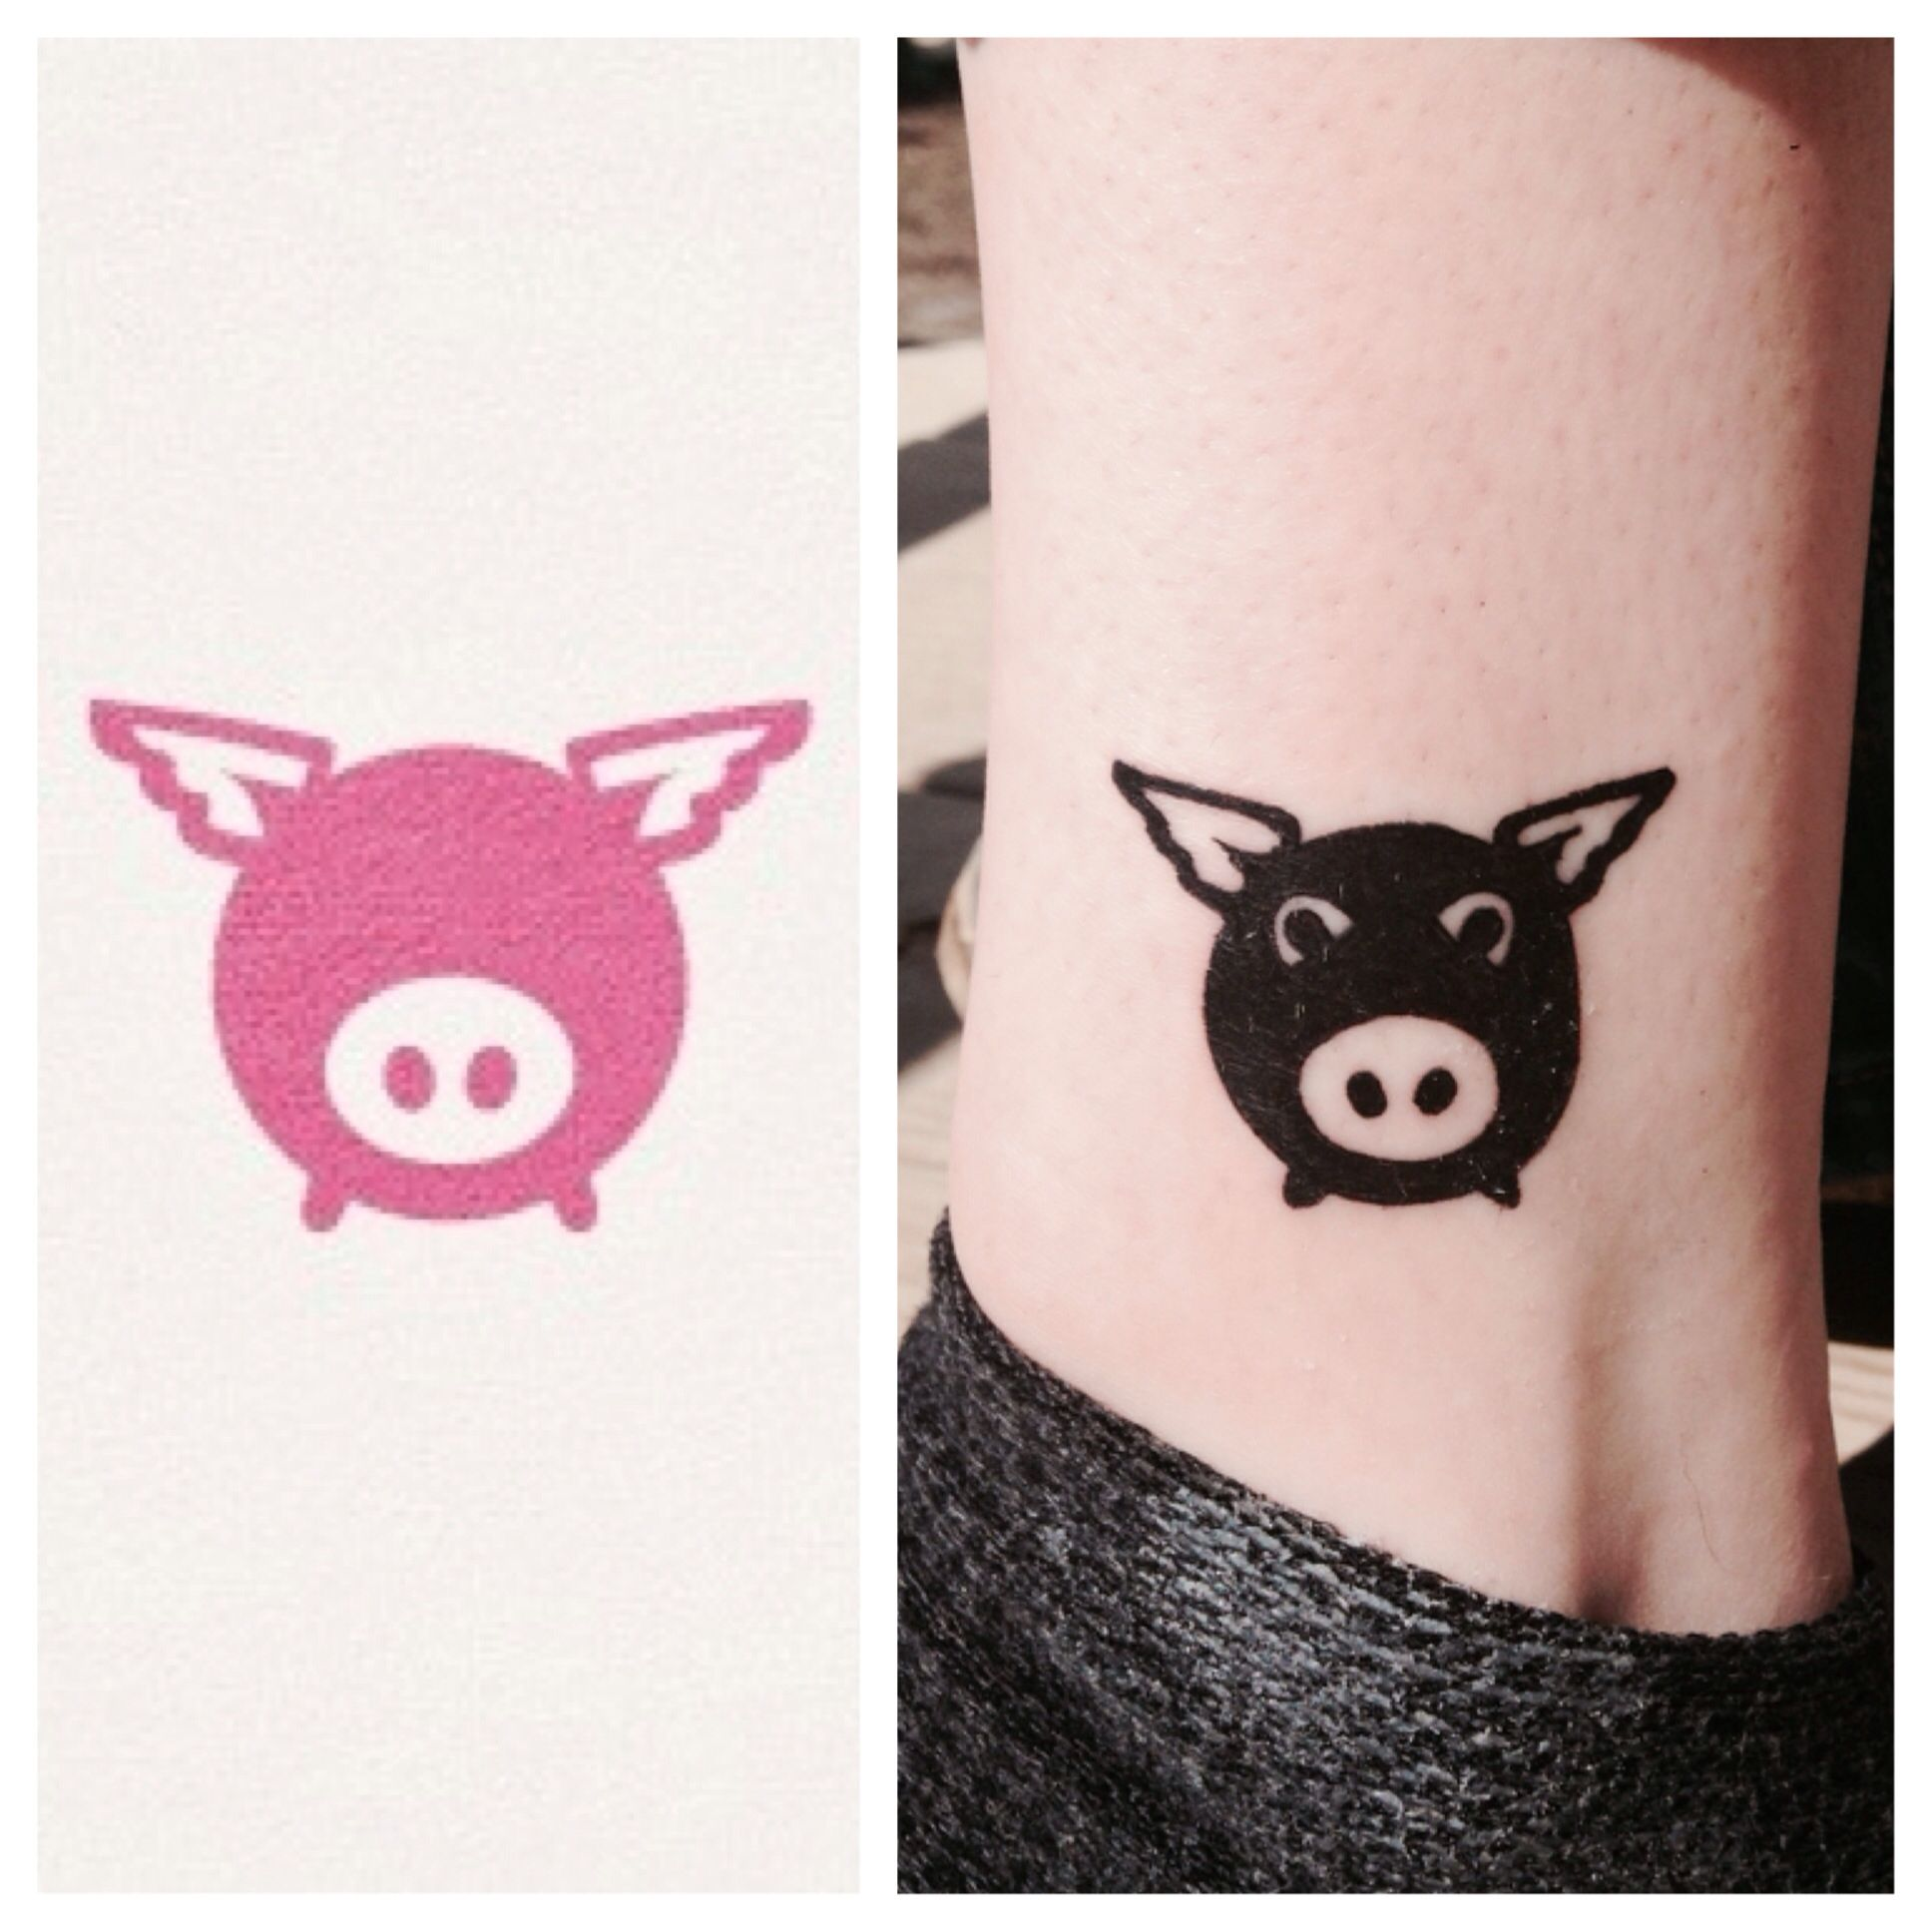 My tattoo when pigs fly